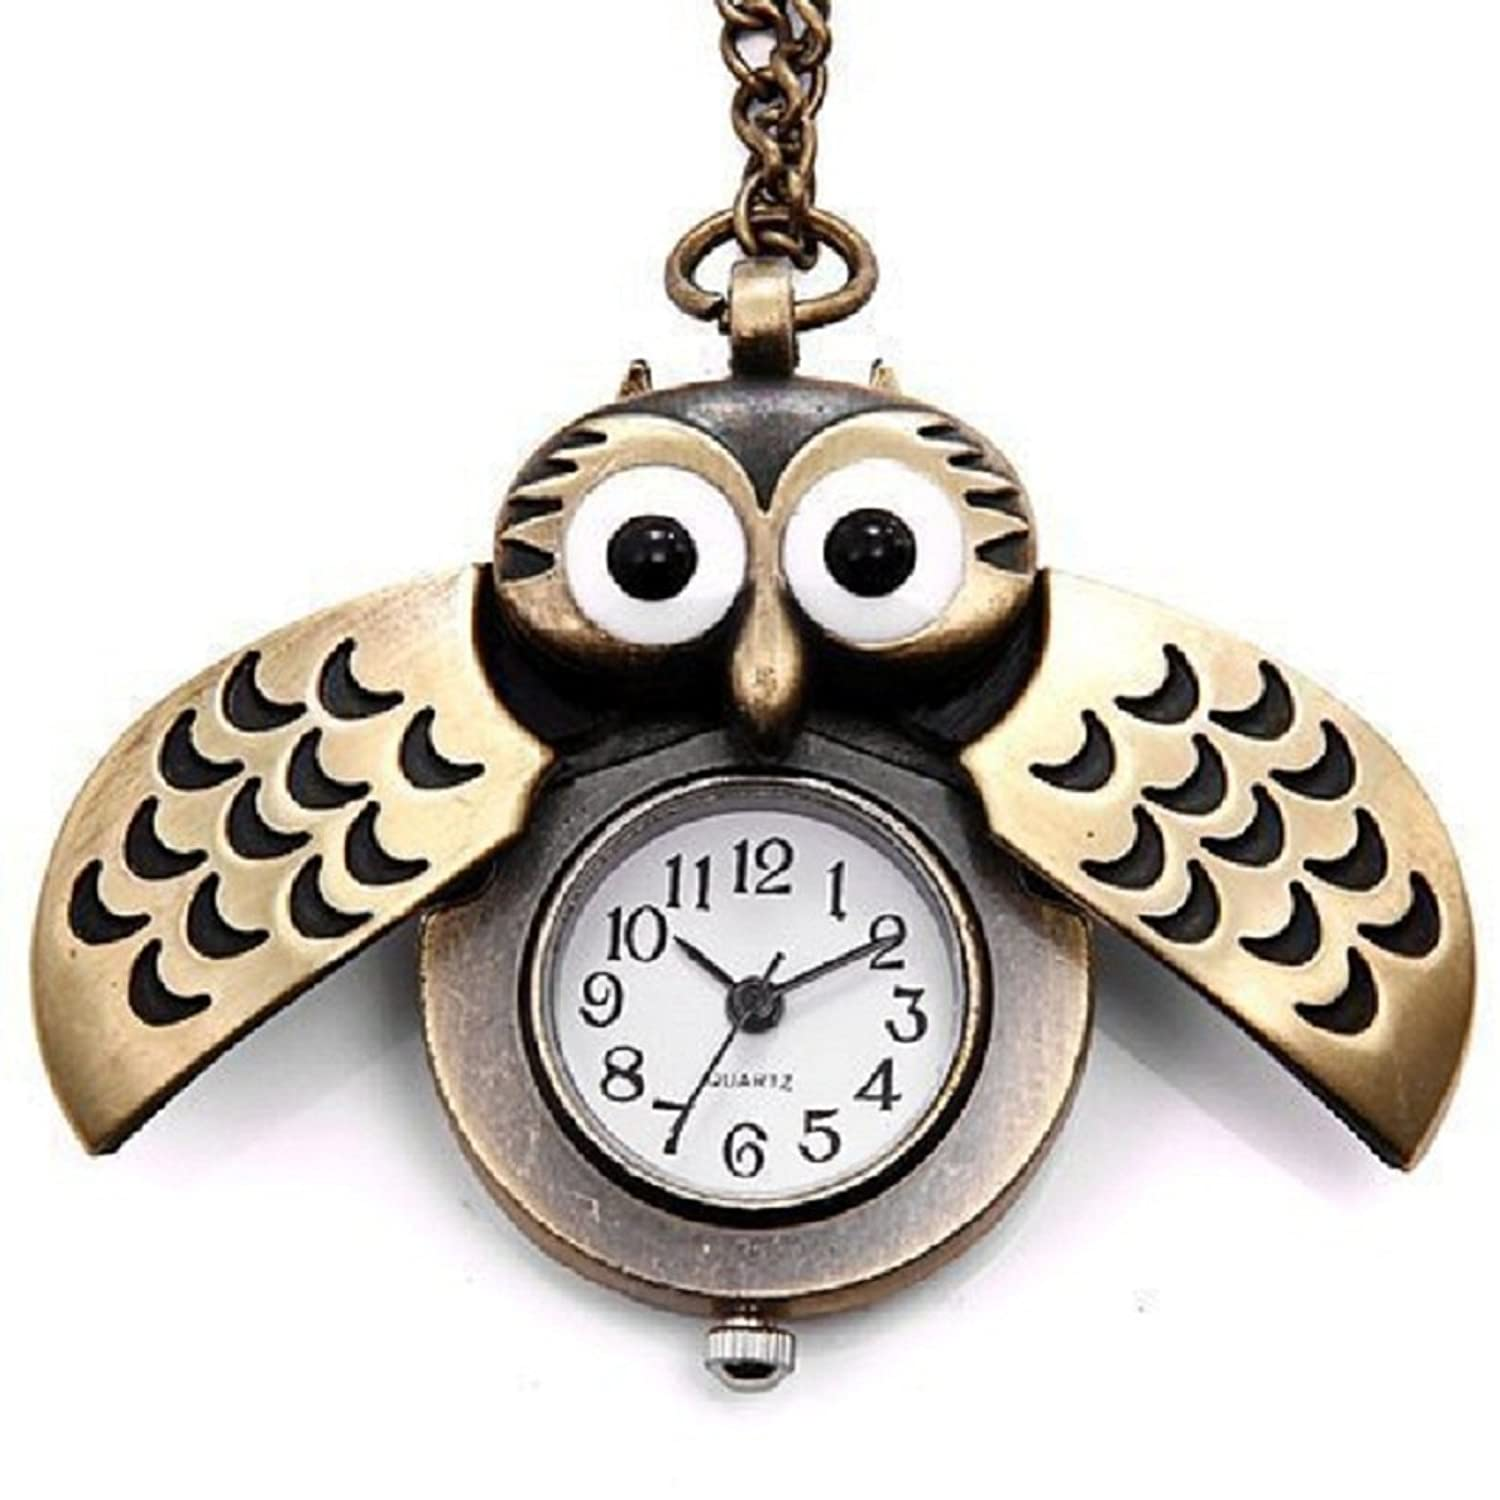 necklace fob women vintage hand mechanical winding chain clock product steampunk watch skeleton pocket men pendant